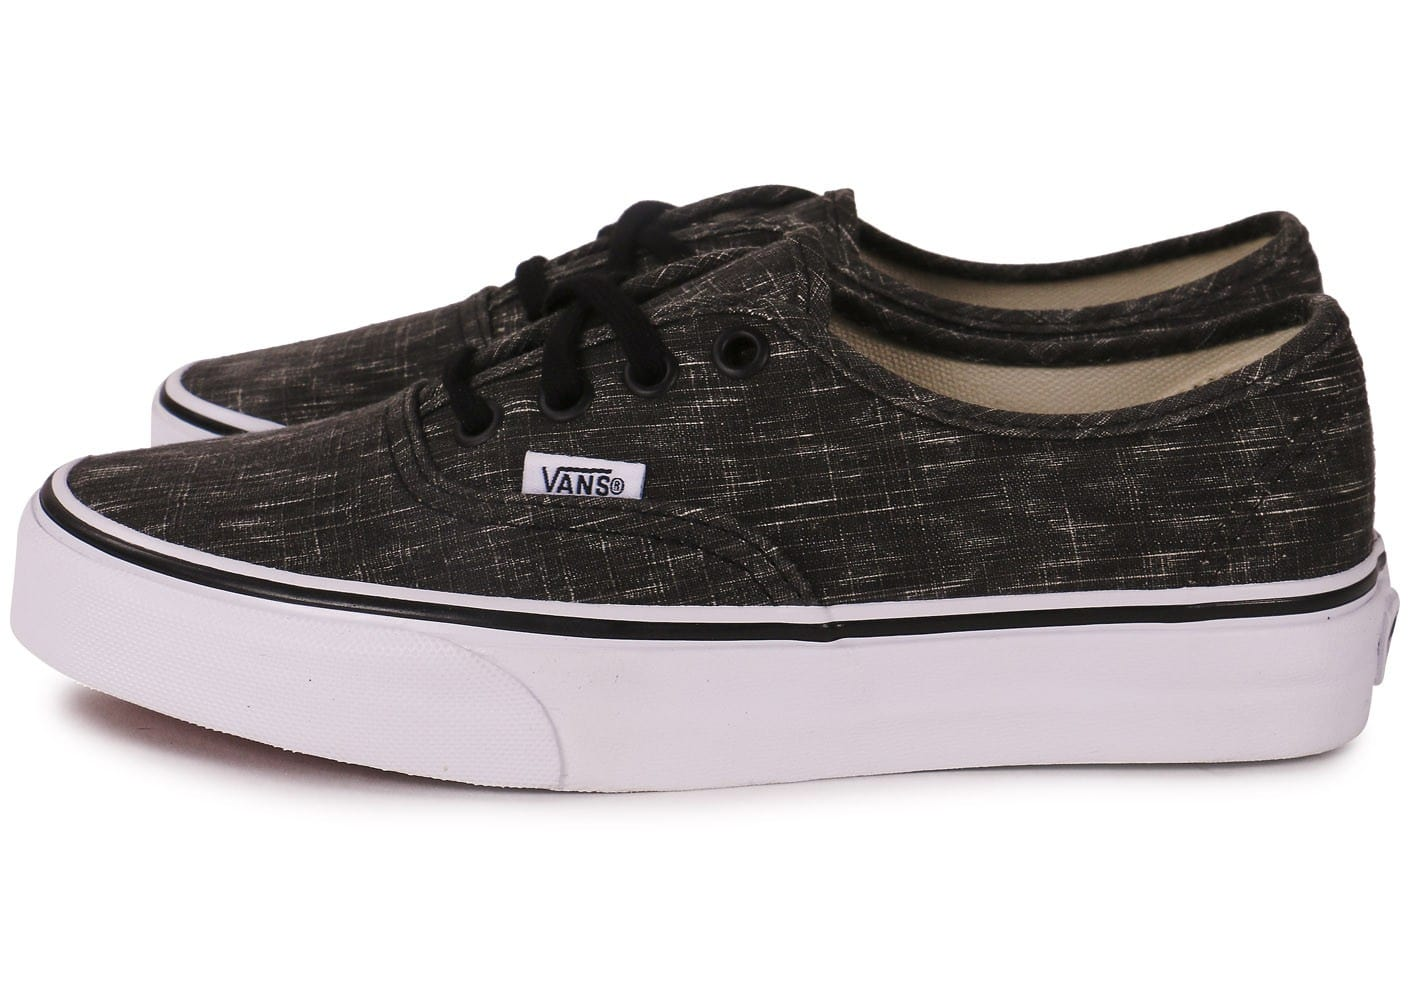 vans authentic noir et blanc chaussures chaussures chausport. Black Bedroom Furniture Sets. Home Design Ideas